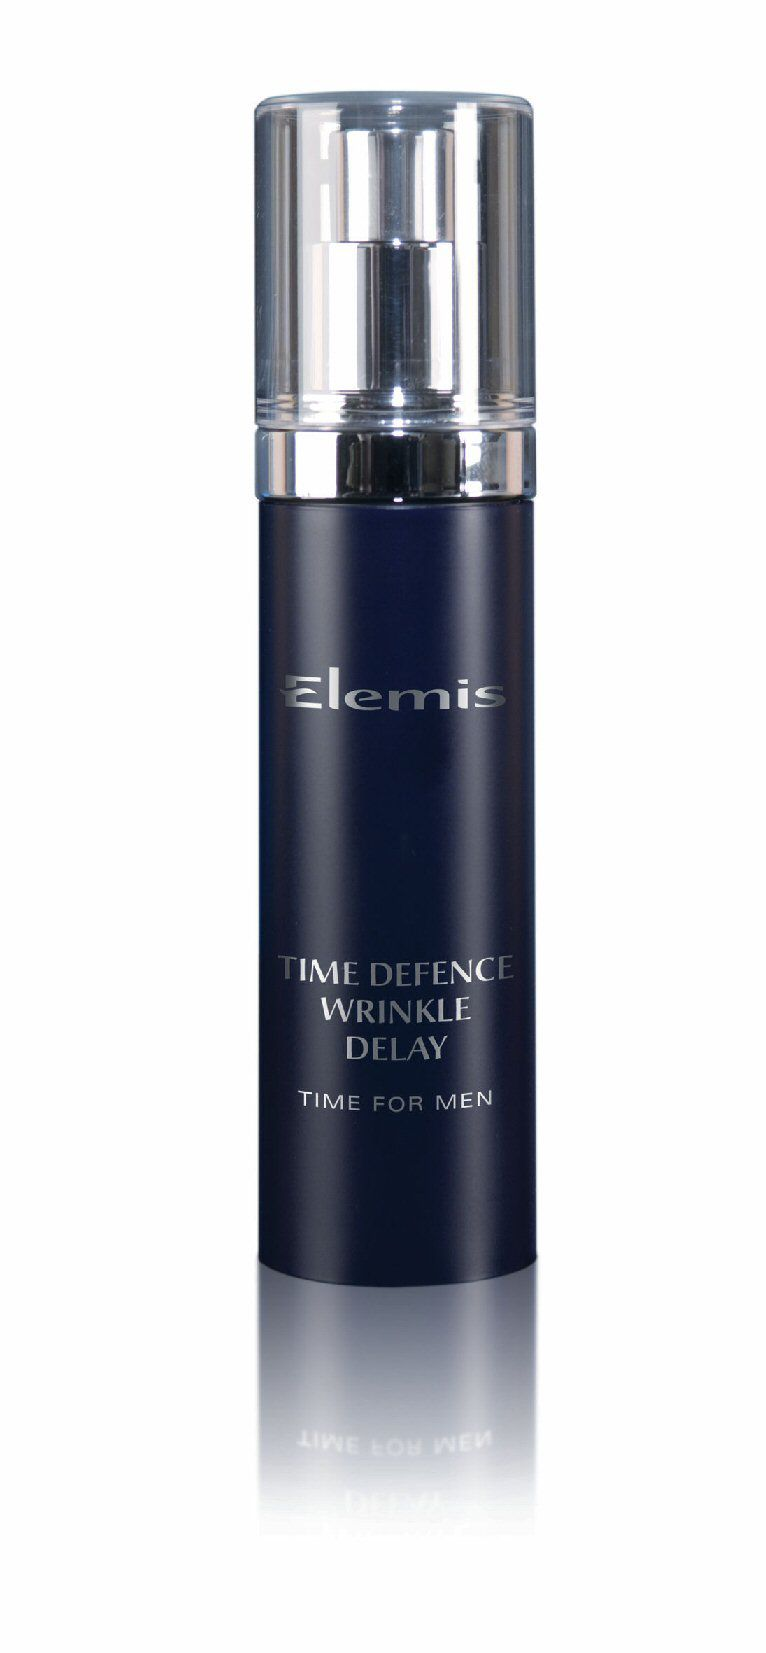 Time Defence Wrinkle Delay for Men